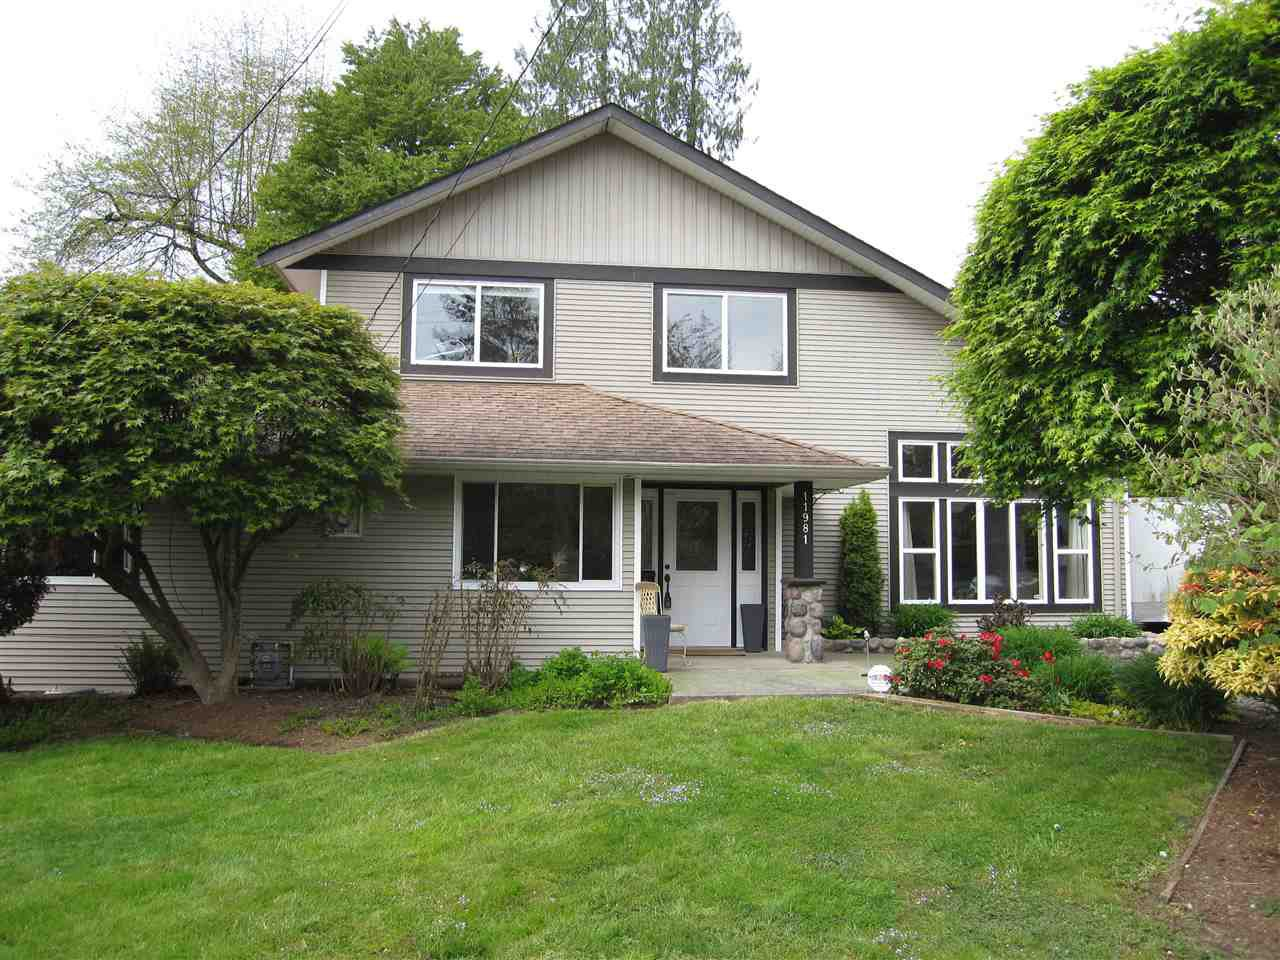 Main Photo: 11981 248 Street in Maple Ridge: Cottonwood MR House for sale : MLS®# R2165177